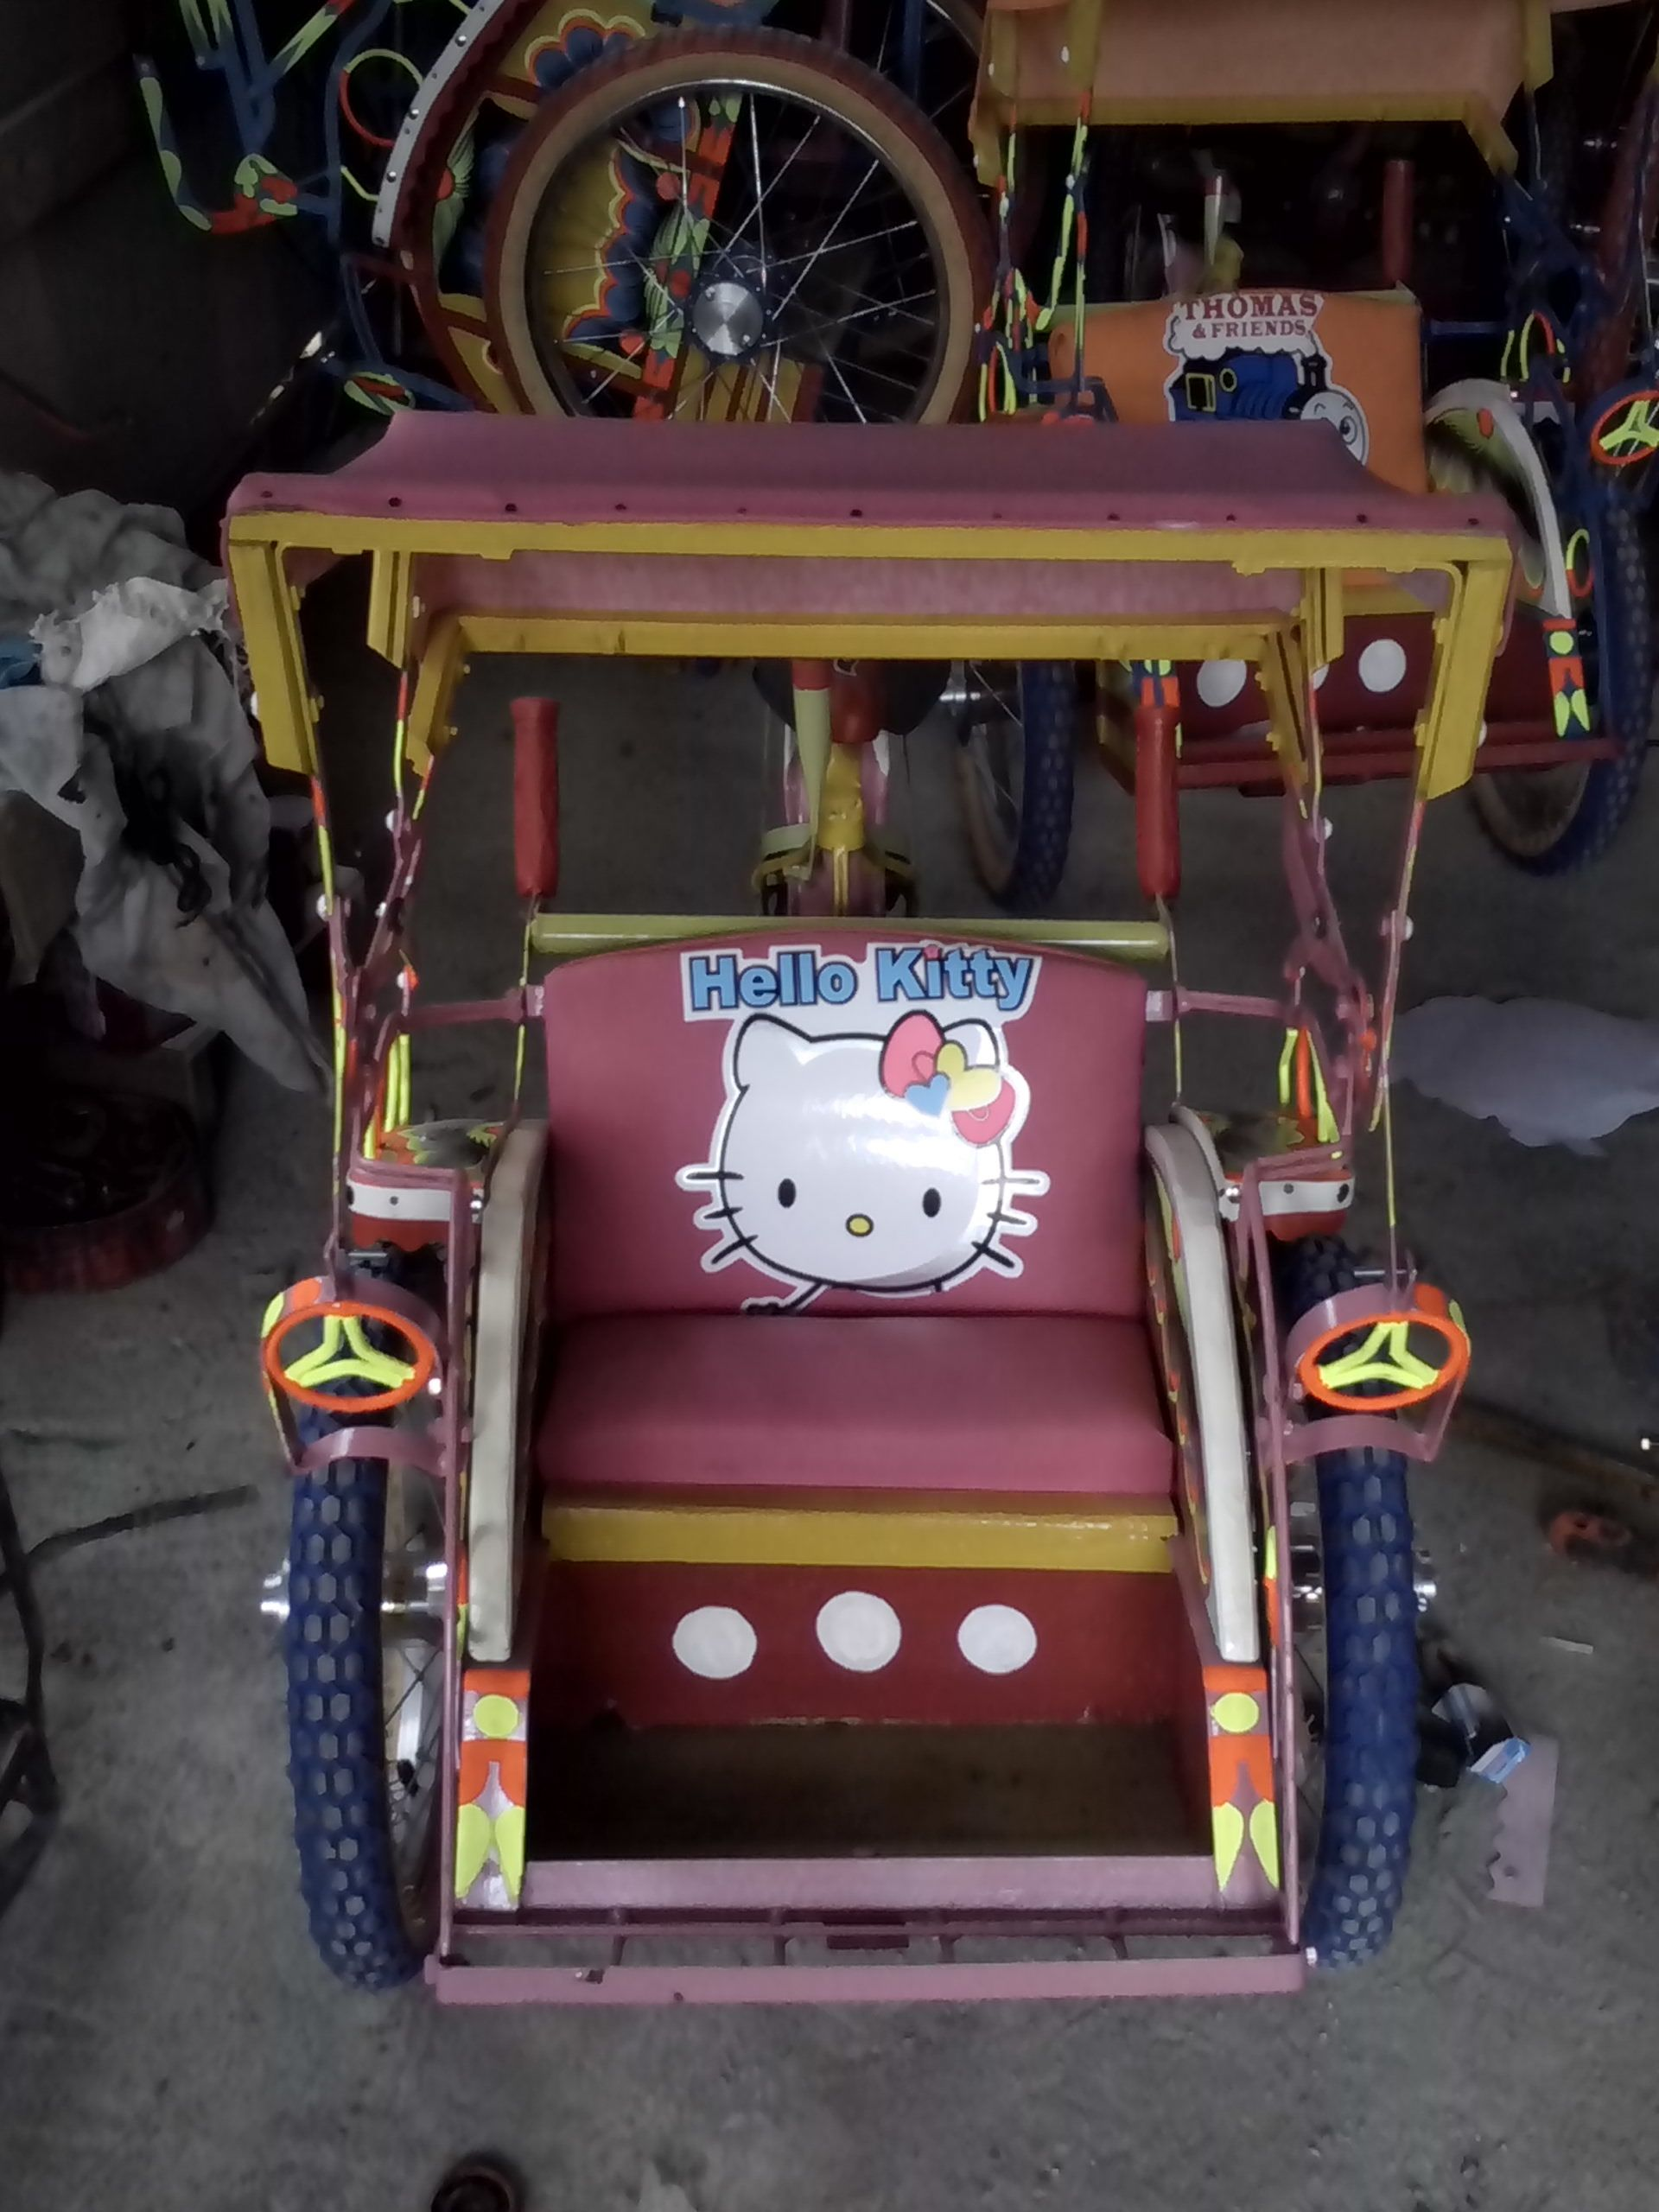 jual beli becak mini 085697729535 www.becakminiku